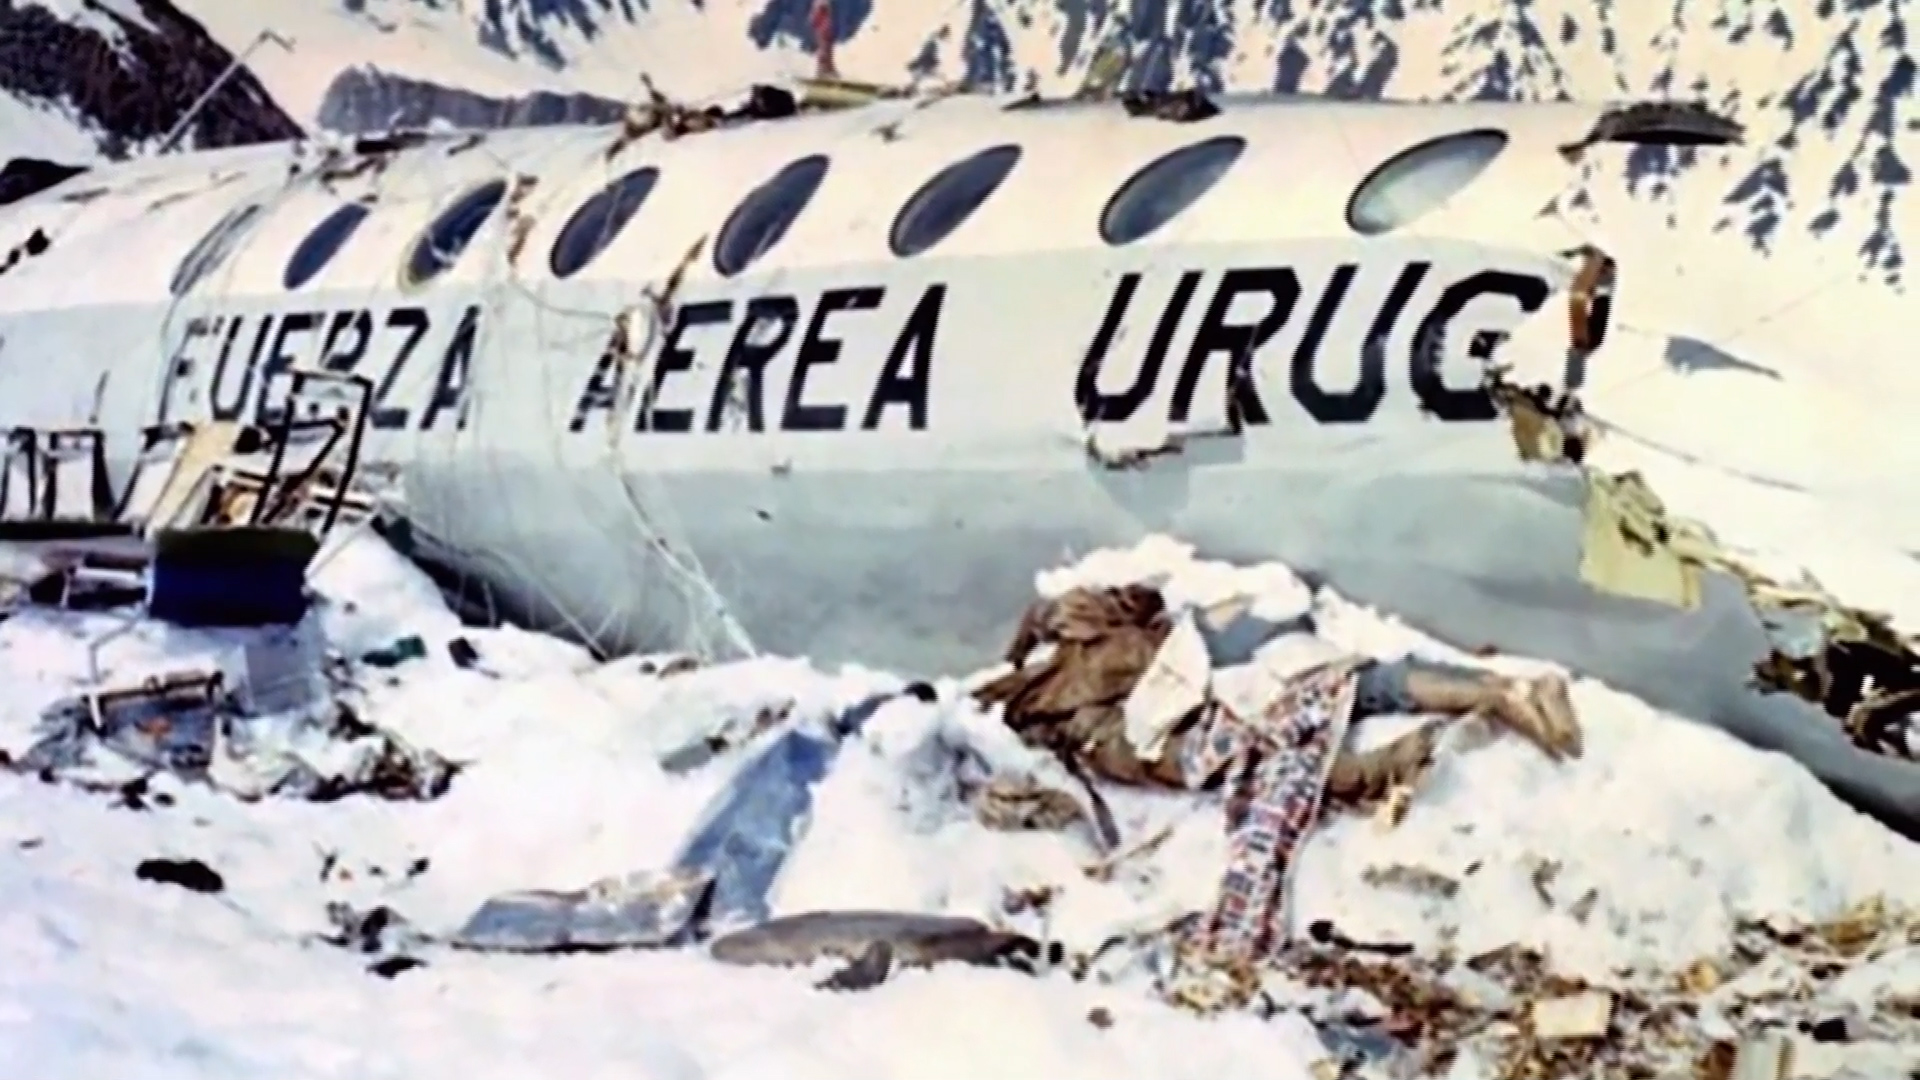 https://america.cgtn.com/2017/12/20/survivor-roberto-canessa-relives-1972-plane-crash-in-the-andes